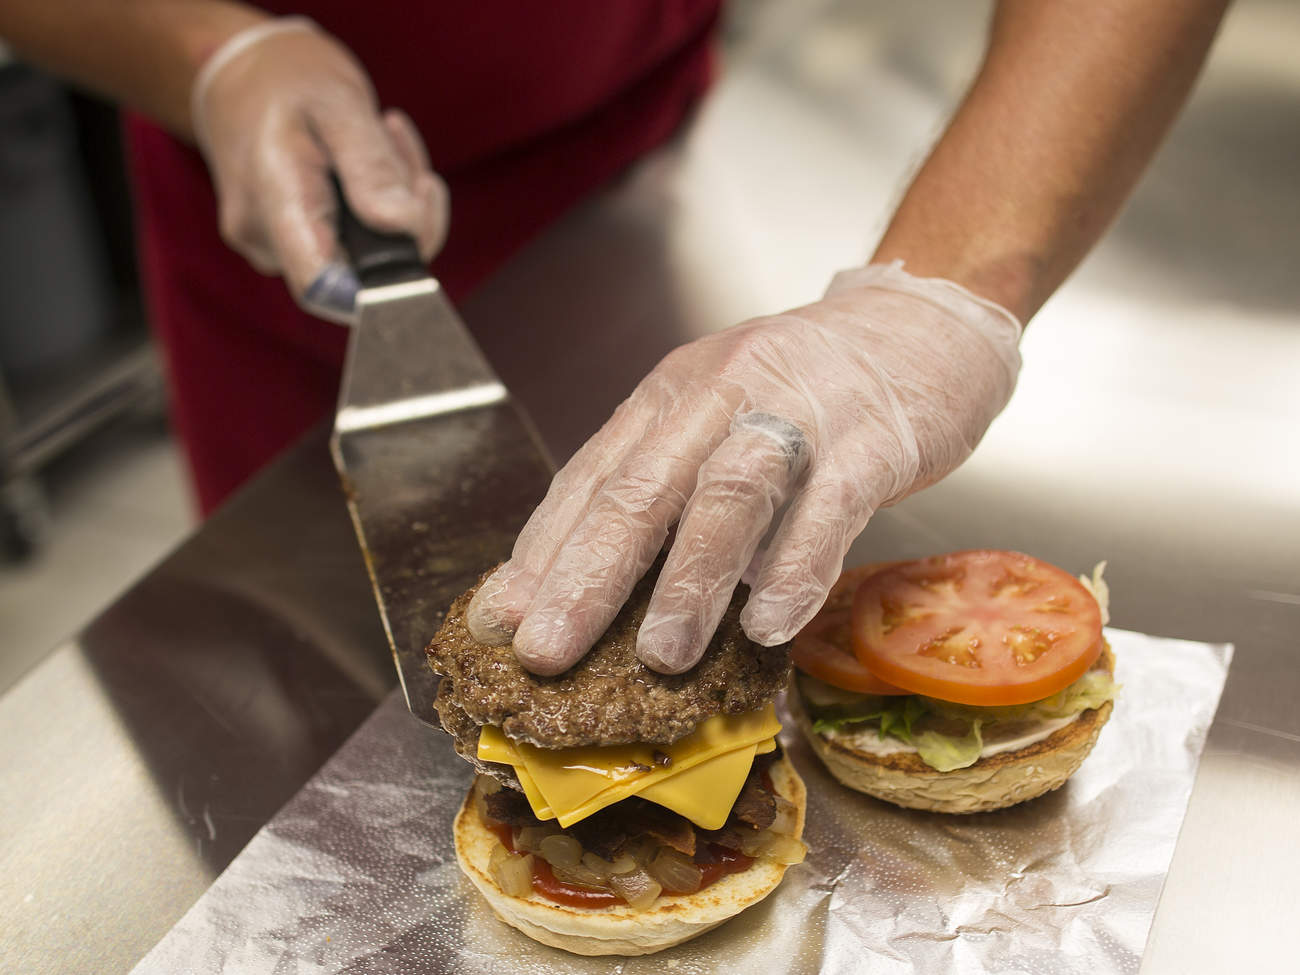 Five Guys Burger Chain hamburger cheeseburger healthy nutrition calories